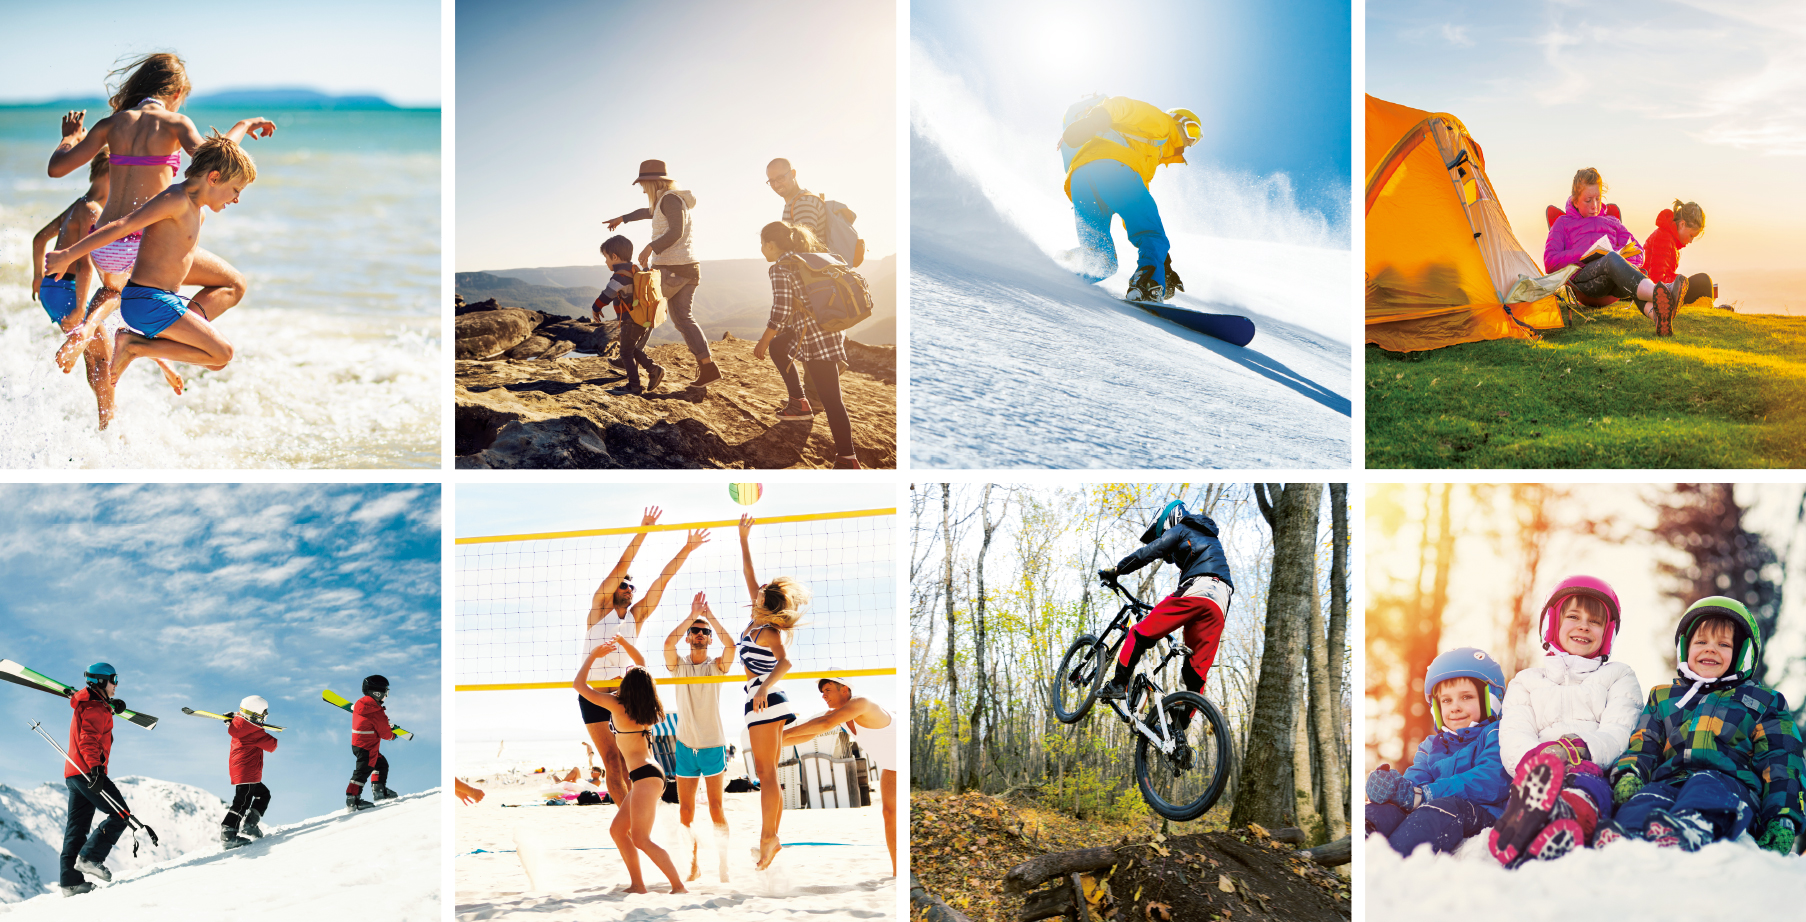 [photo] A photo grid comprising 8 photos with individuals and families engaging in seasonal outdoor activities